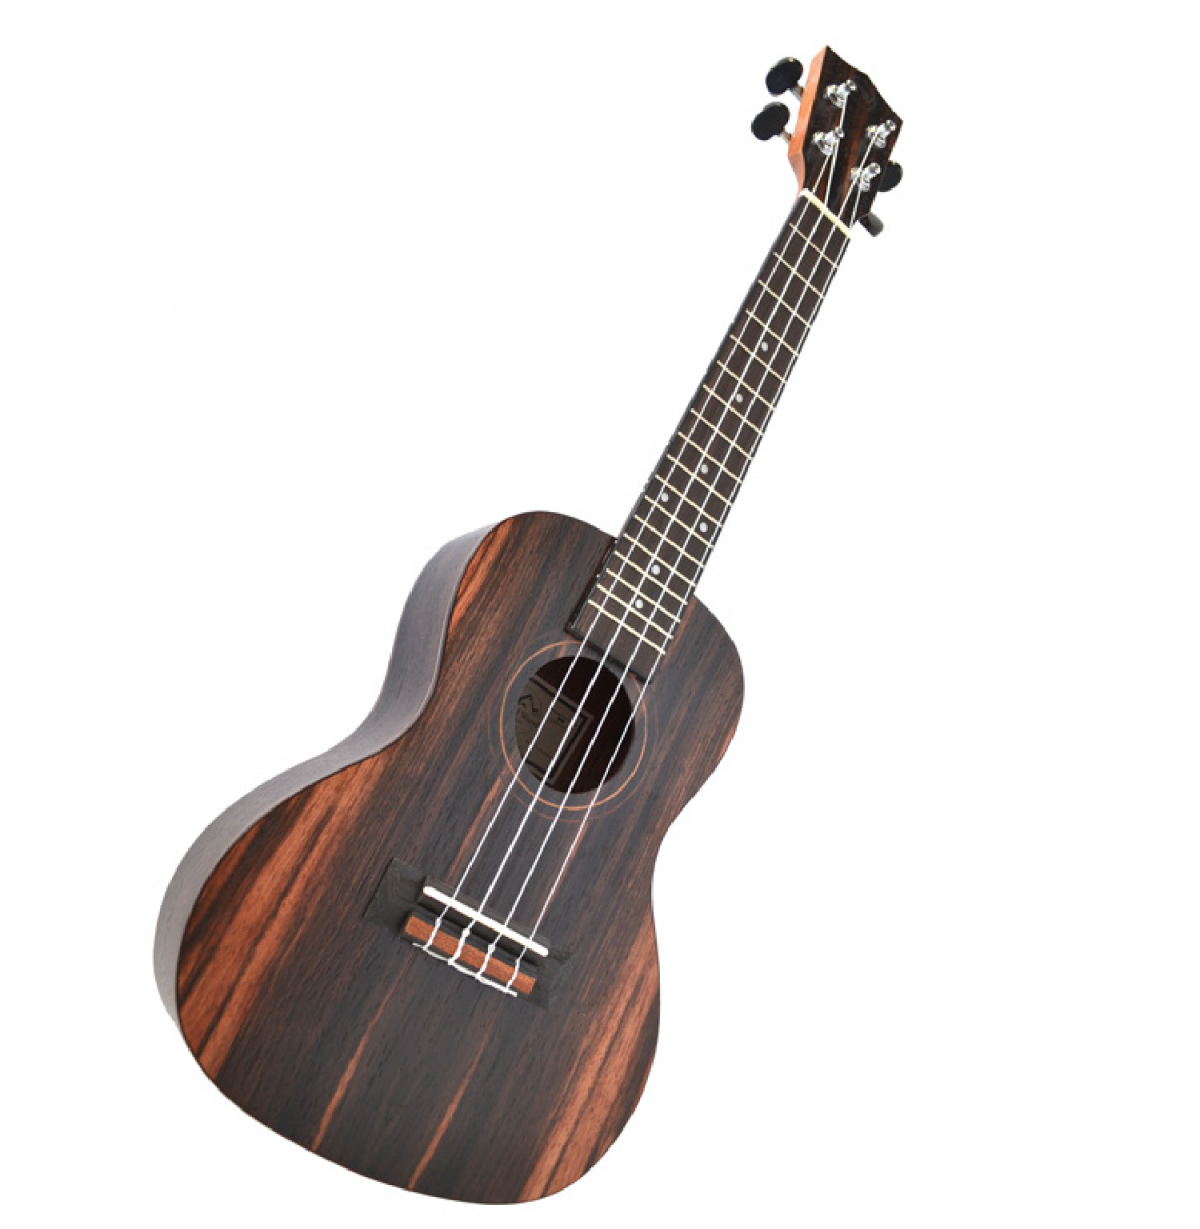 Twisted Wood Dorado Tenor Ukulele - DO300T side